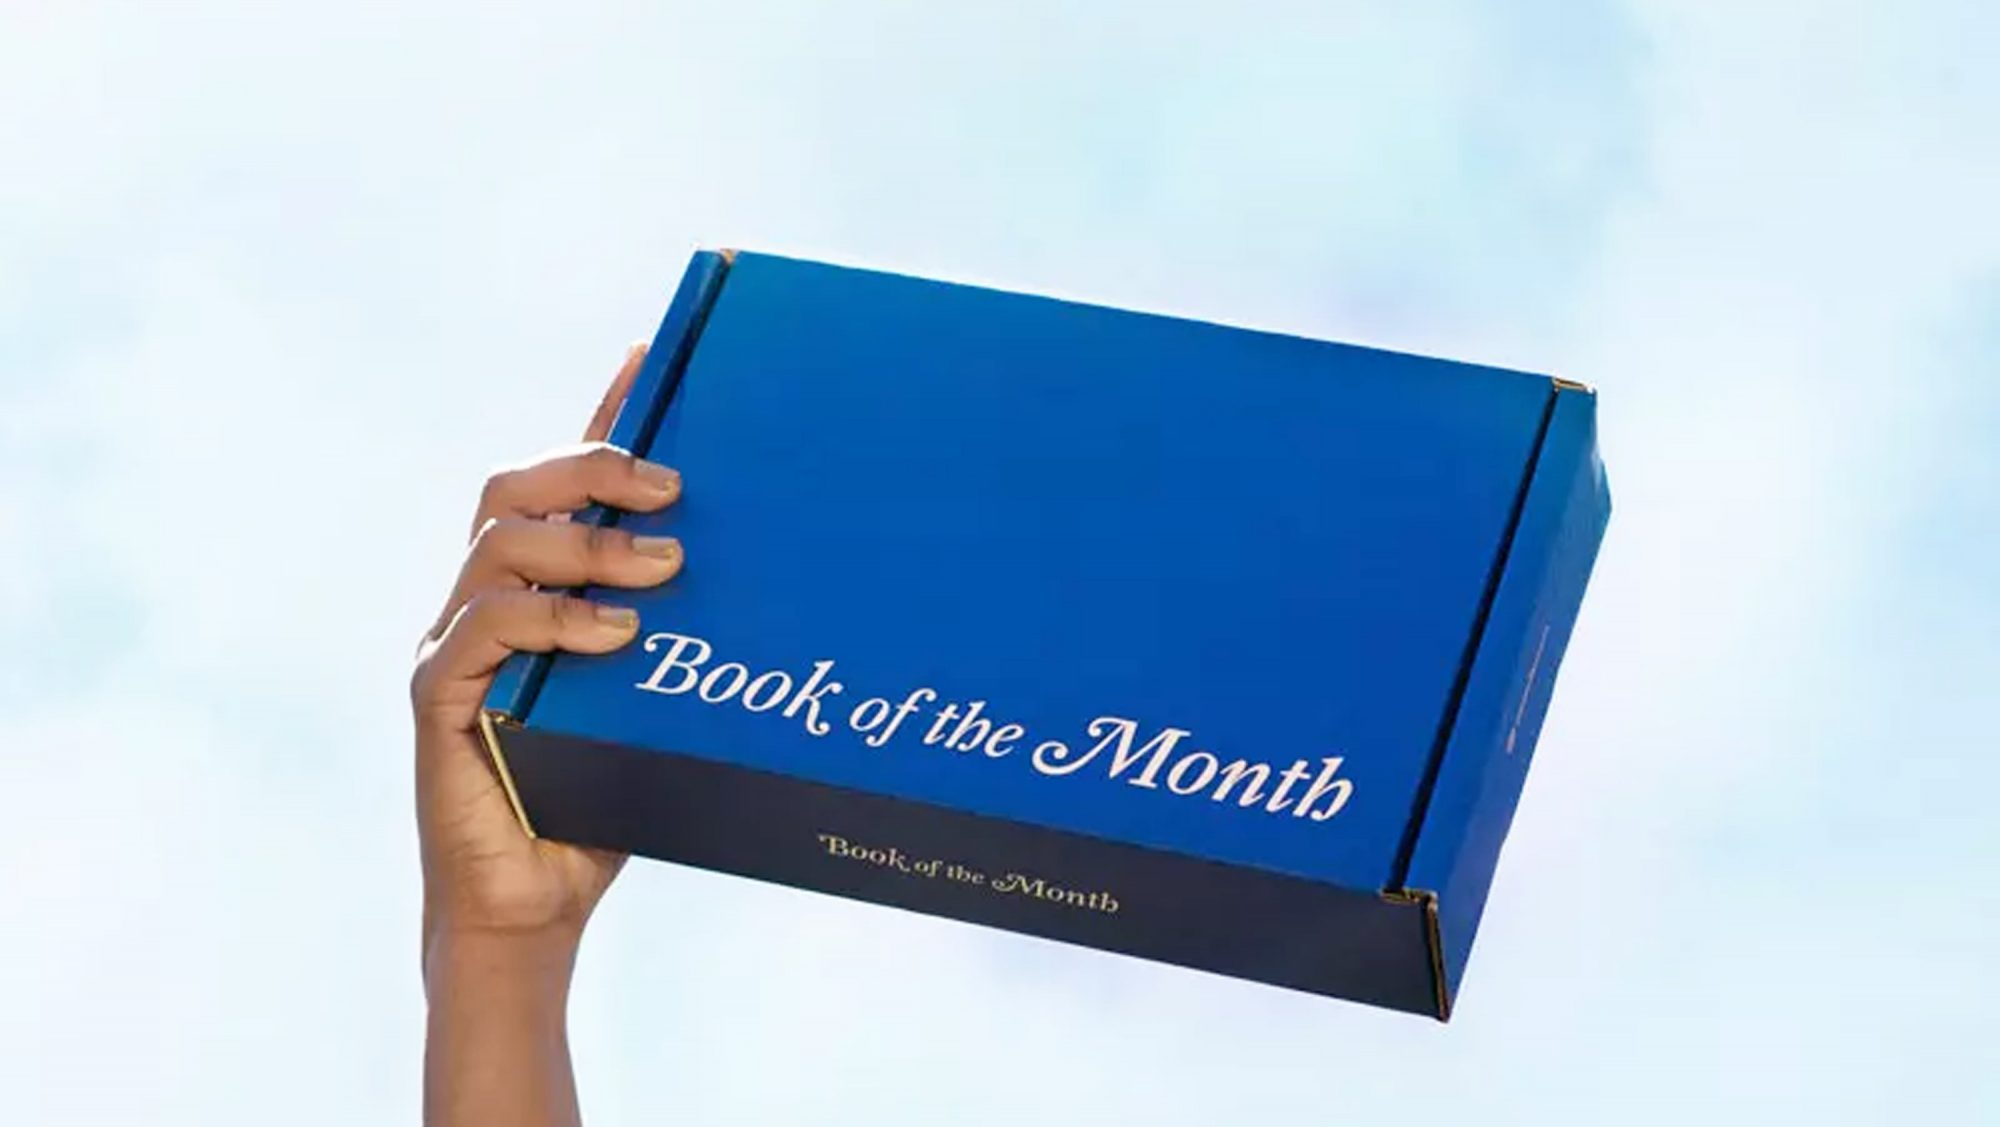 Book of the Month review - subscription box